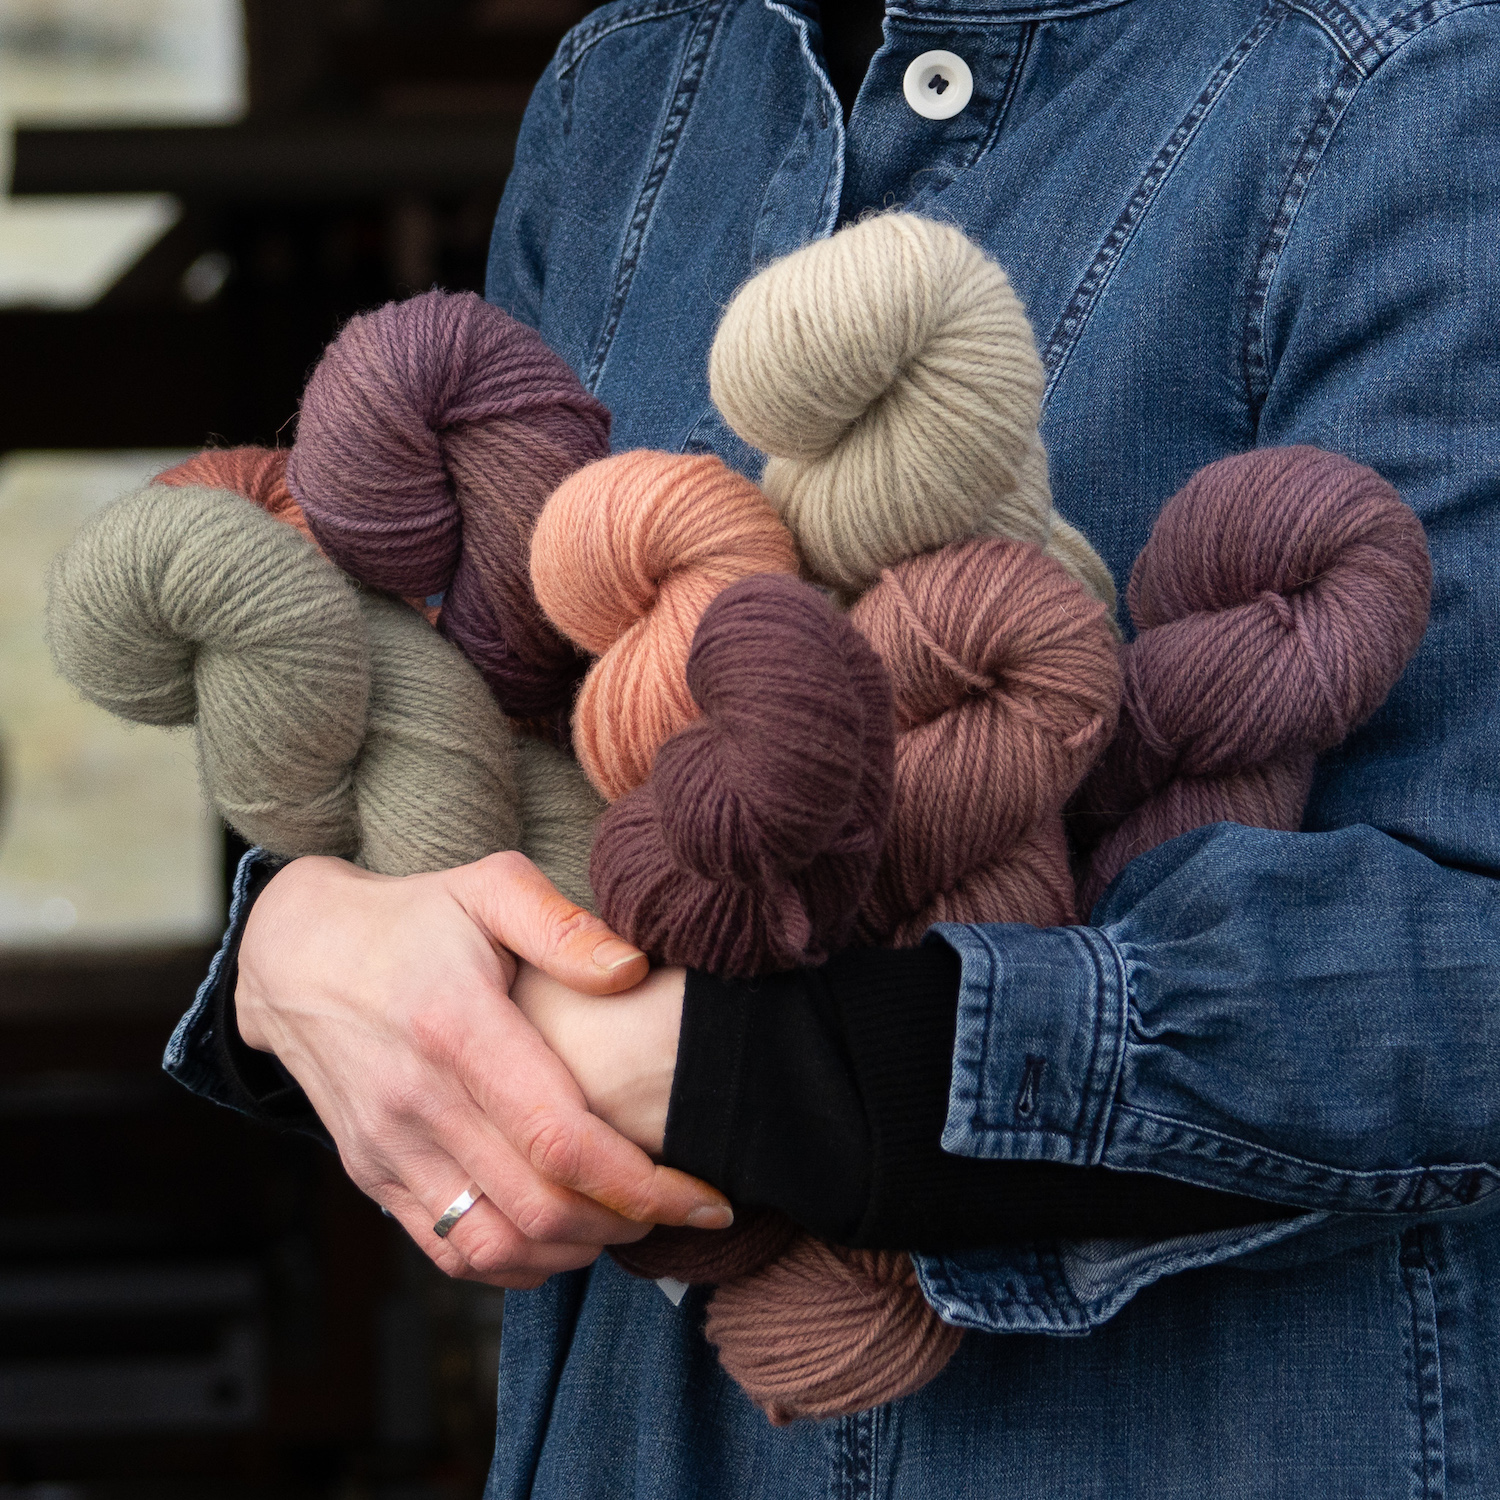 Photo of an adult in a denim shirt holding a stack of skeins of yarn